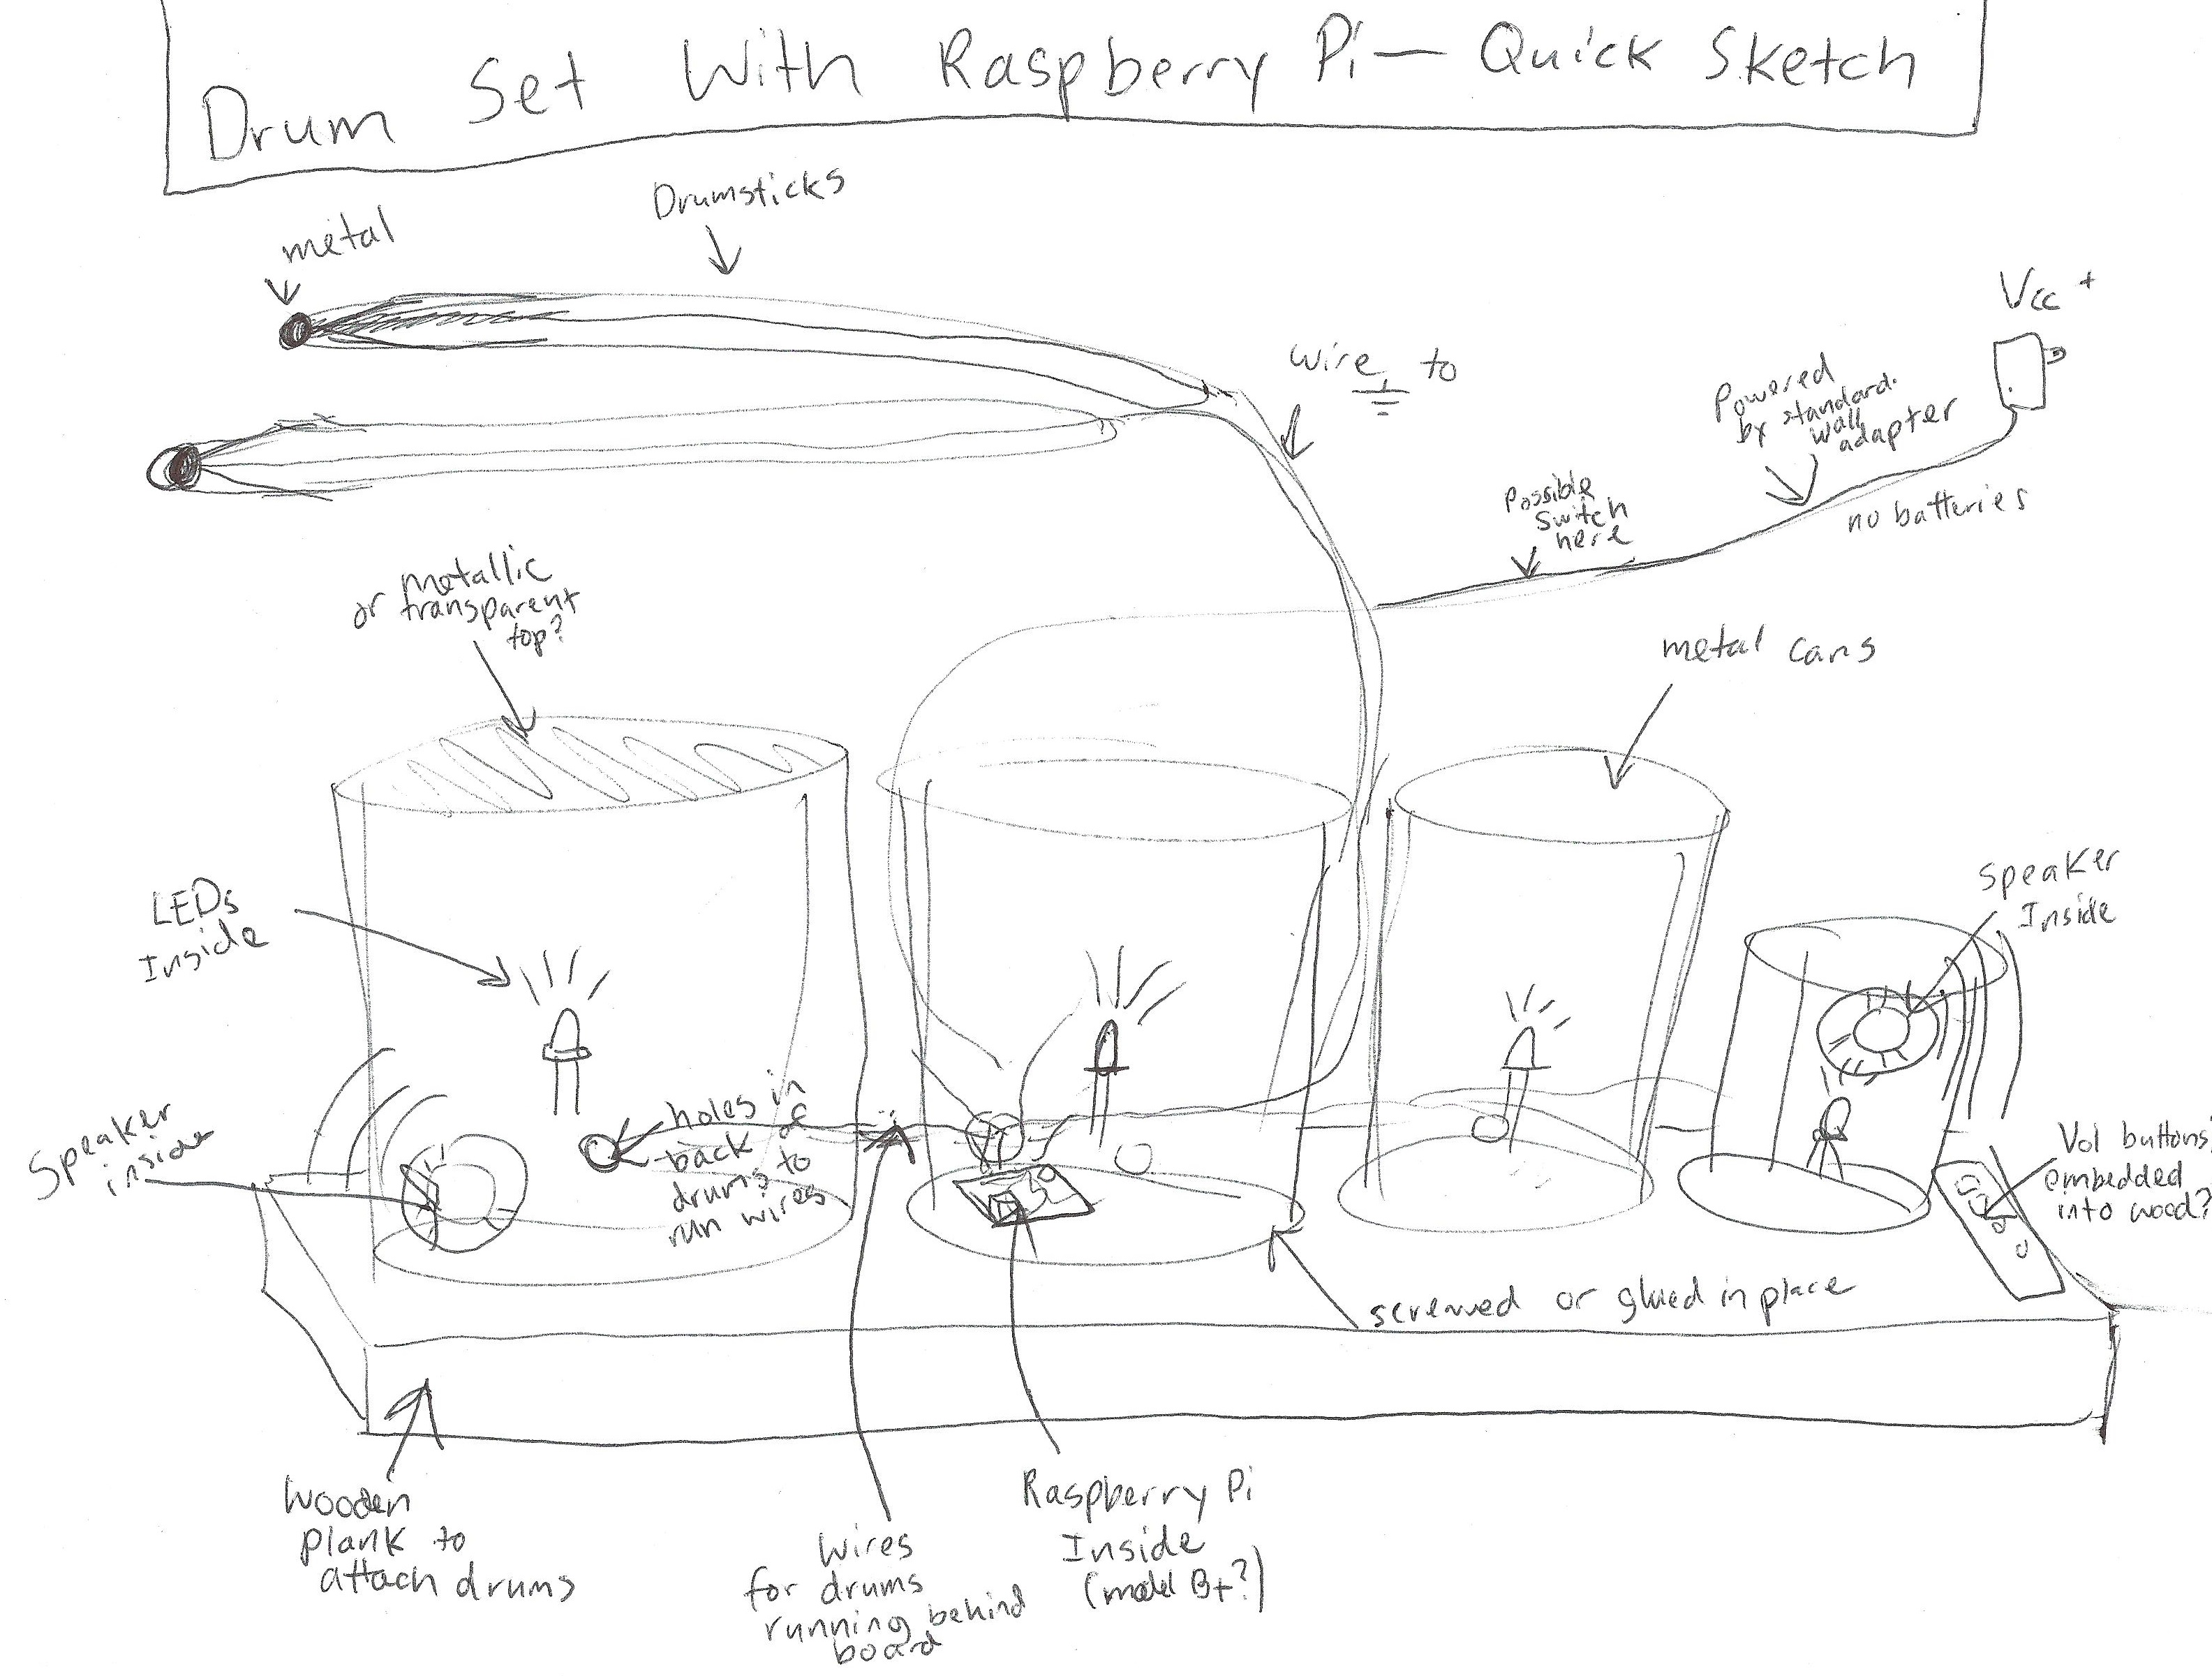 3169x2401 Drum Set With Raspberry Pi Initial Sketch)12 16 15 Electrothoughts